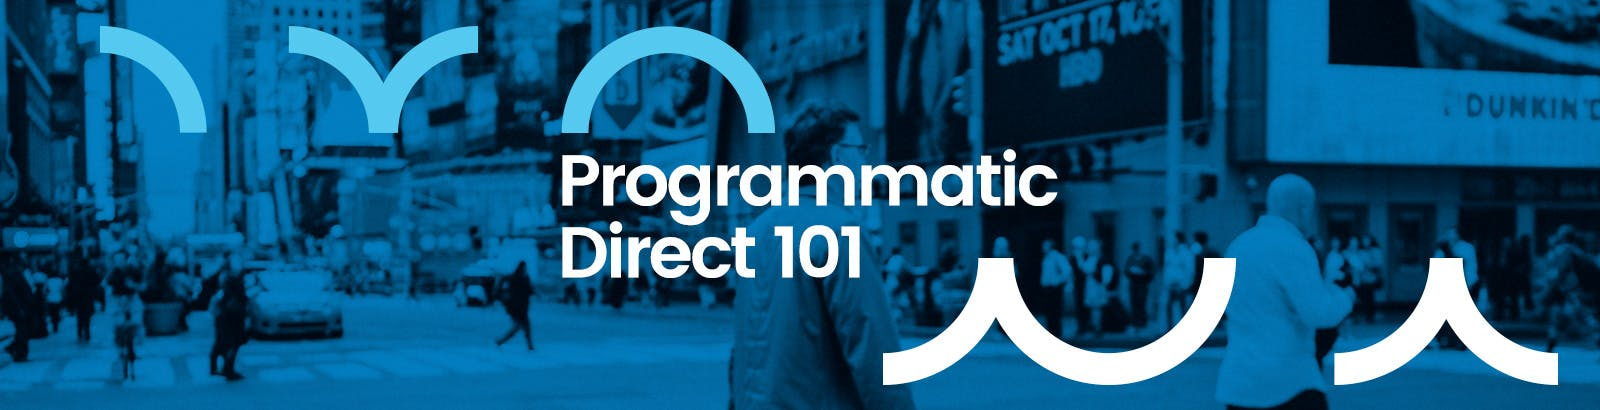 ProgrammaticDirect BlogHeropt1 - Programmatic Direct 101 for Buyers: Understanding PMP Deal Types